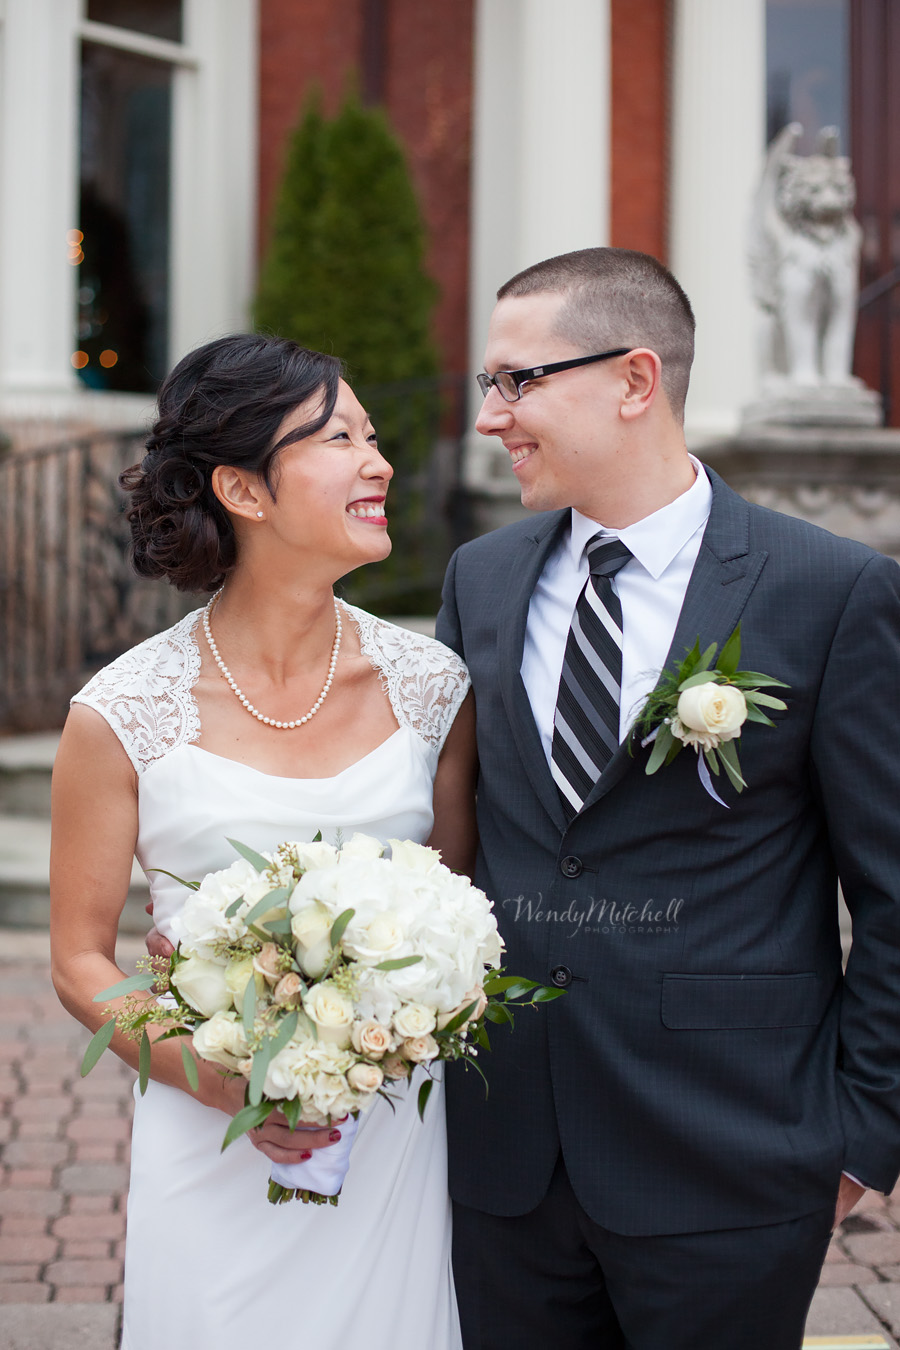 Bride & Groom smiling at each other | Mansion on Delaware | Wendy Mitchell Photography